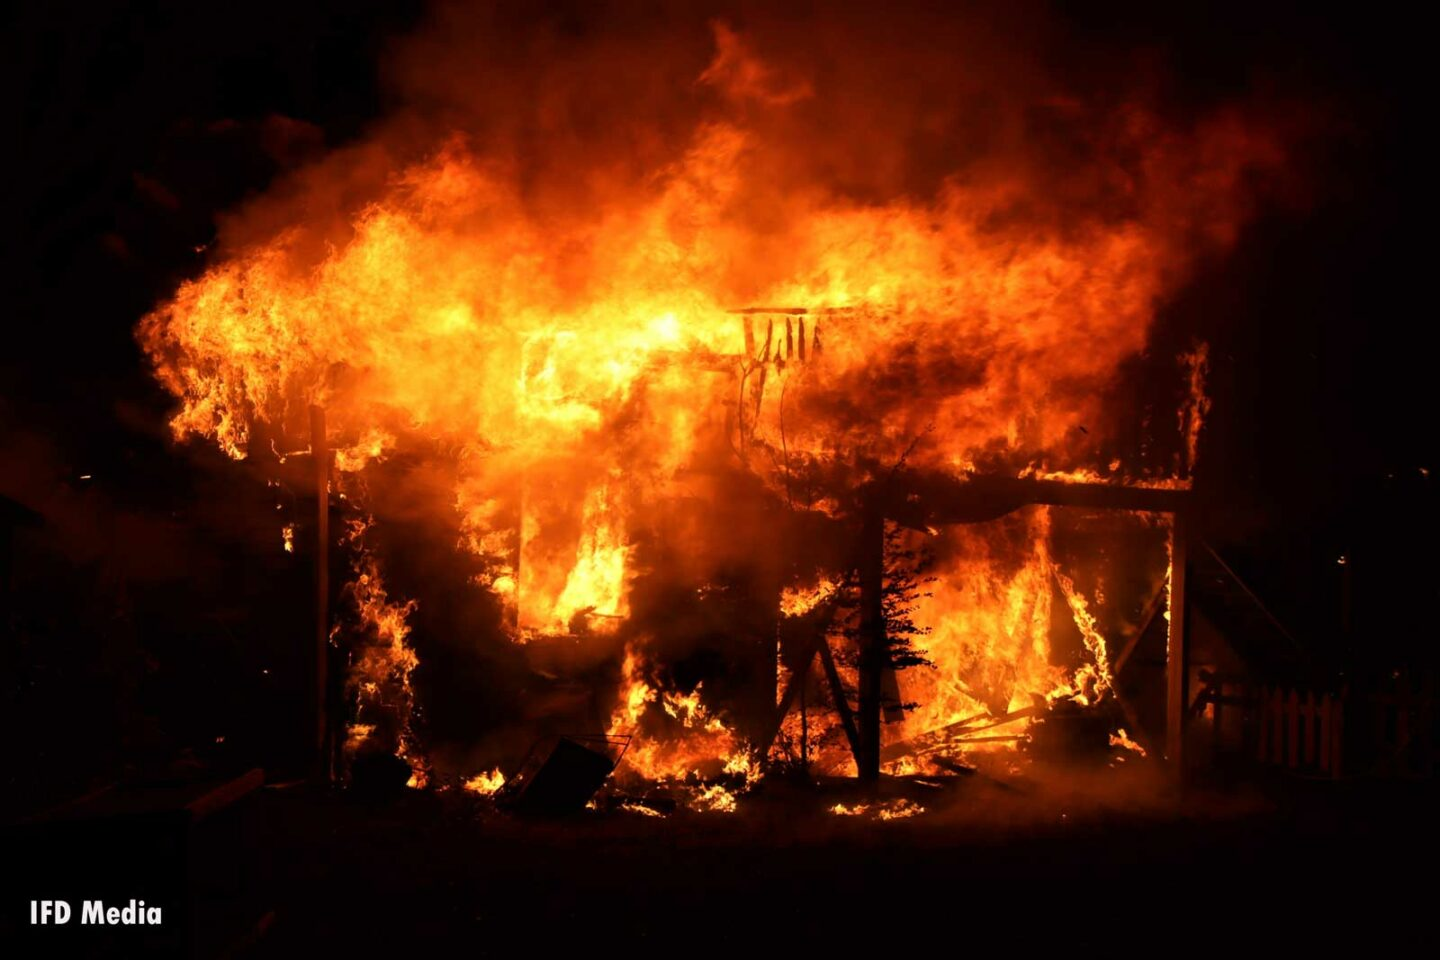 Raging inferno in Indiana where firefighters struggled with water supply